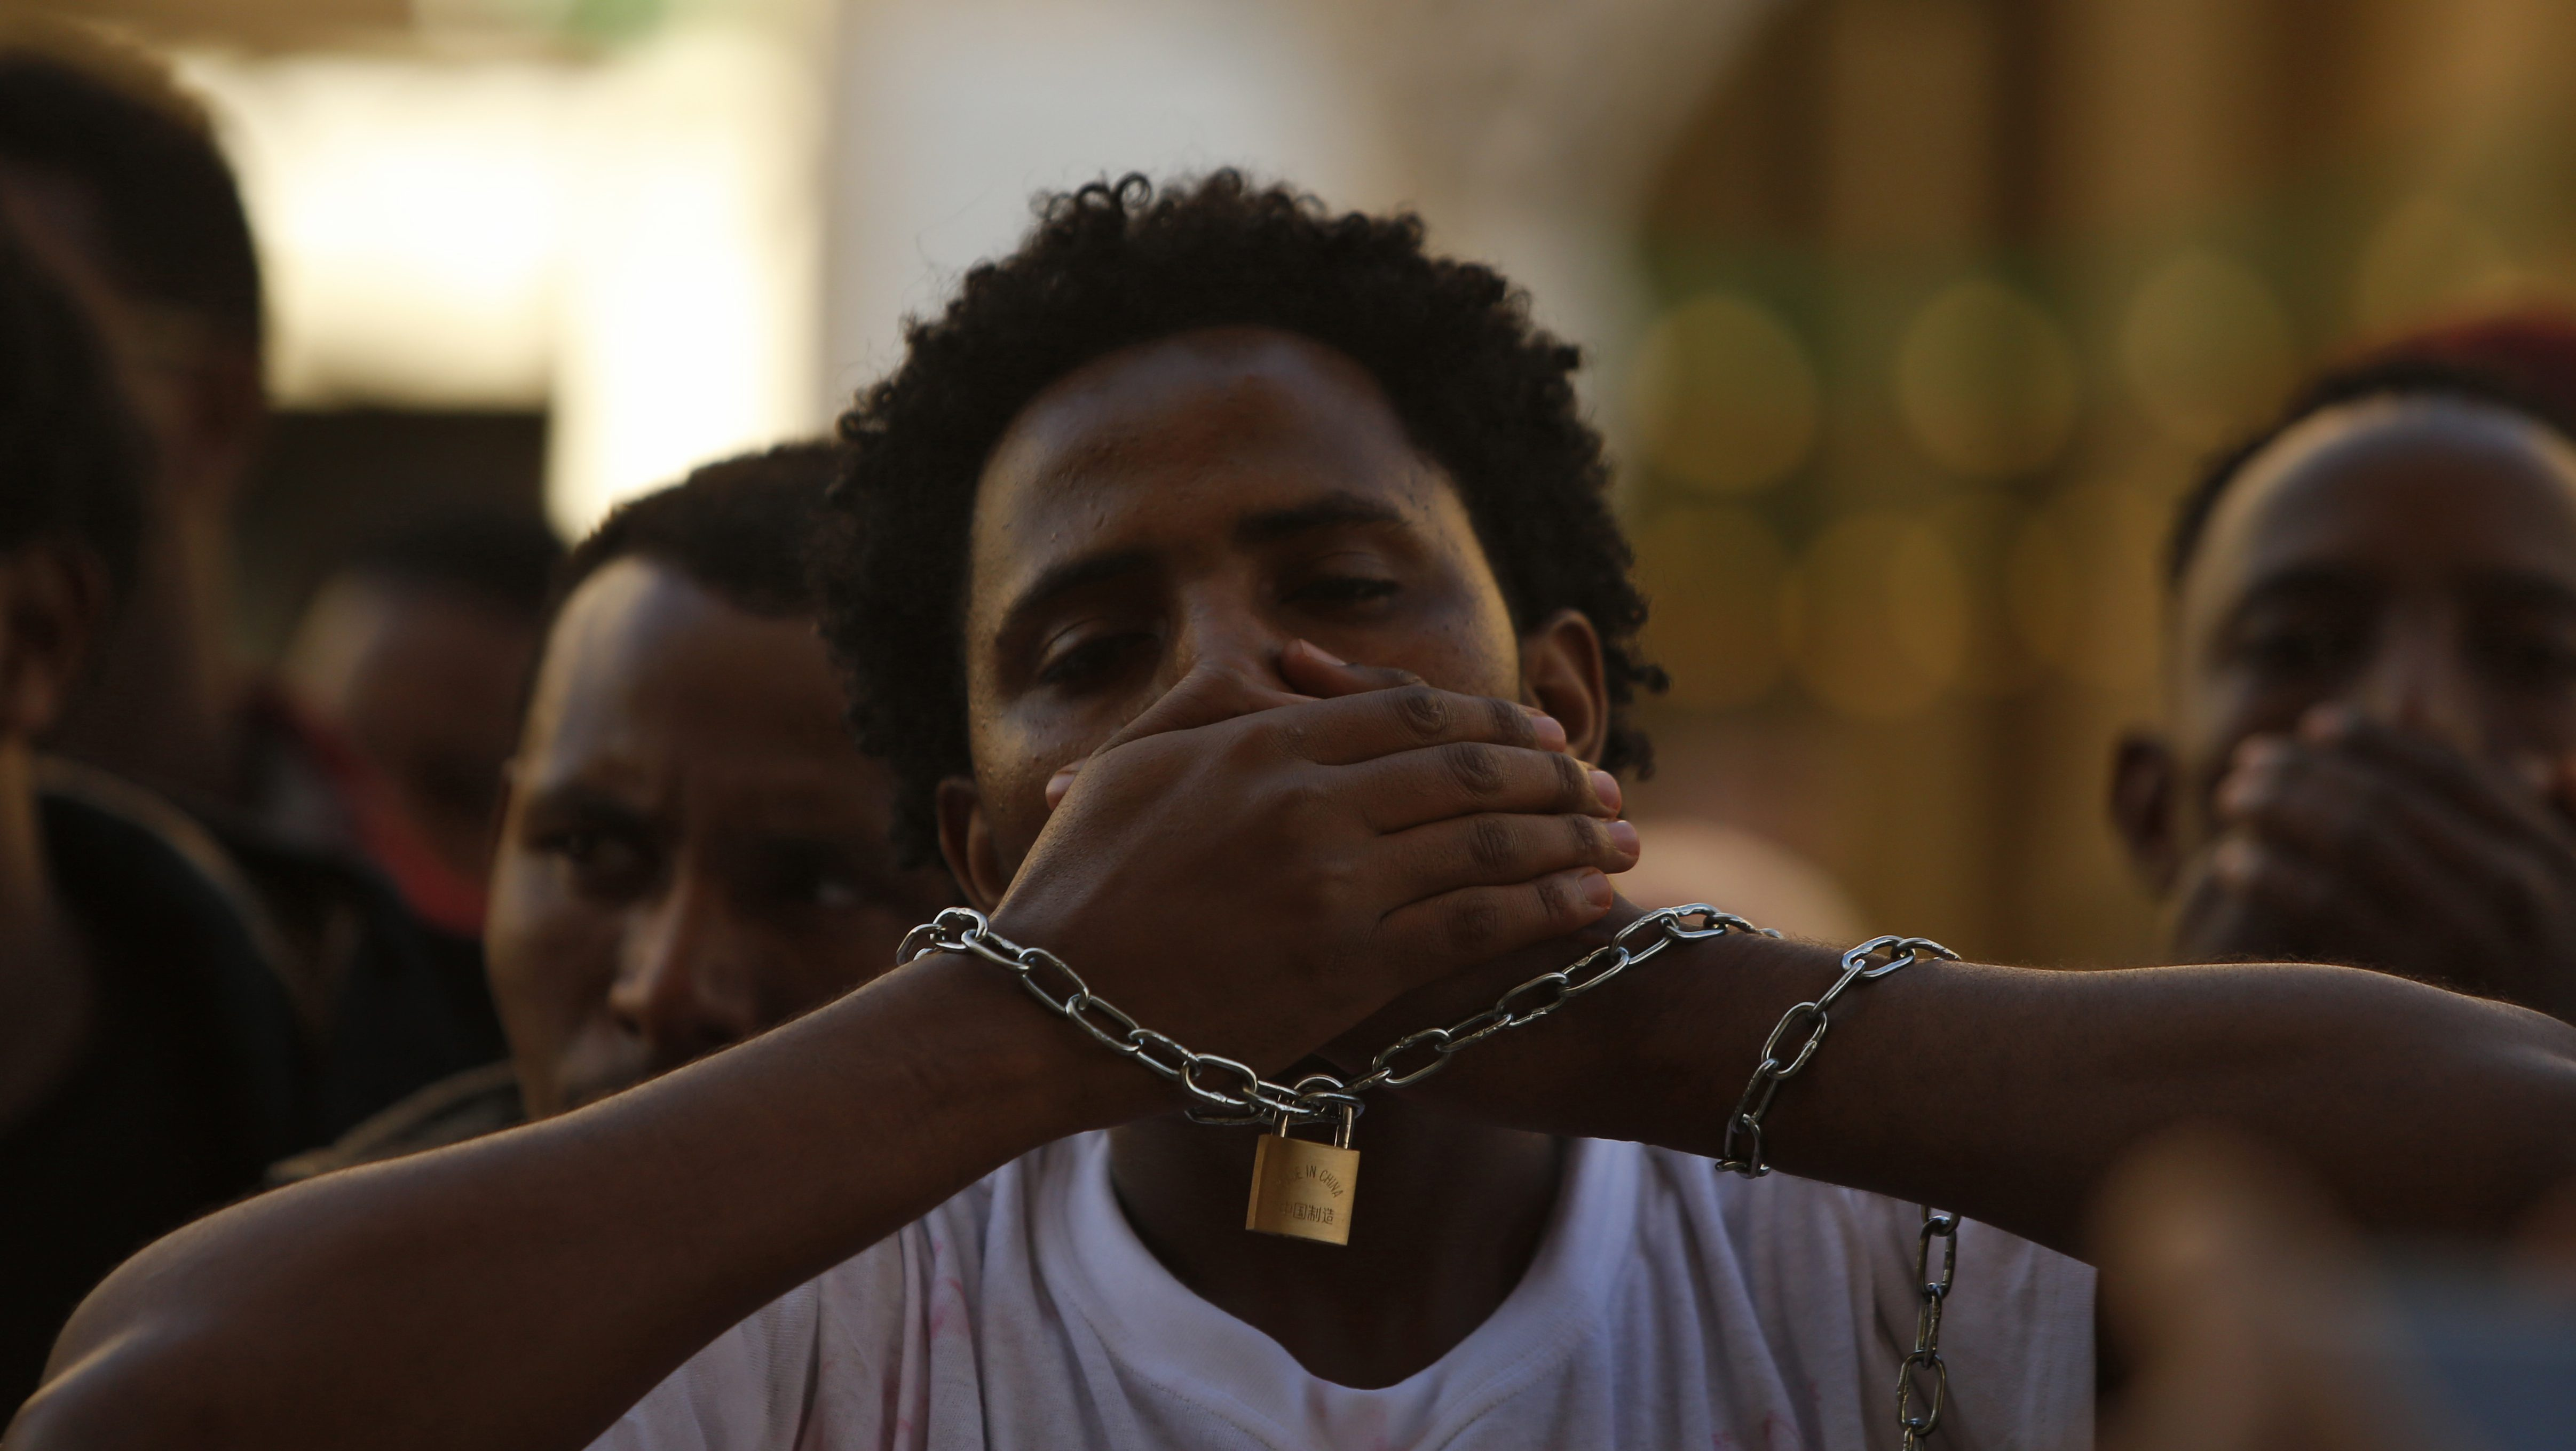 Ethiopian migrants, all members of the Oromo community of Ethiopia living in Malta, protest against the Ethiopian regime in Valletta, Malta, December 21, 2015. Protesters are calling on Malta and the European Union to stop support for the Ethiopian regime, and protested against the regime's plan to evict Oromo farmers to expand Ethiopia's capital Addis Ababa, according to the protest organisers.